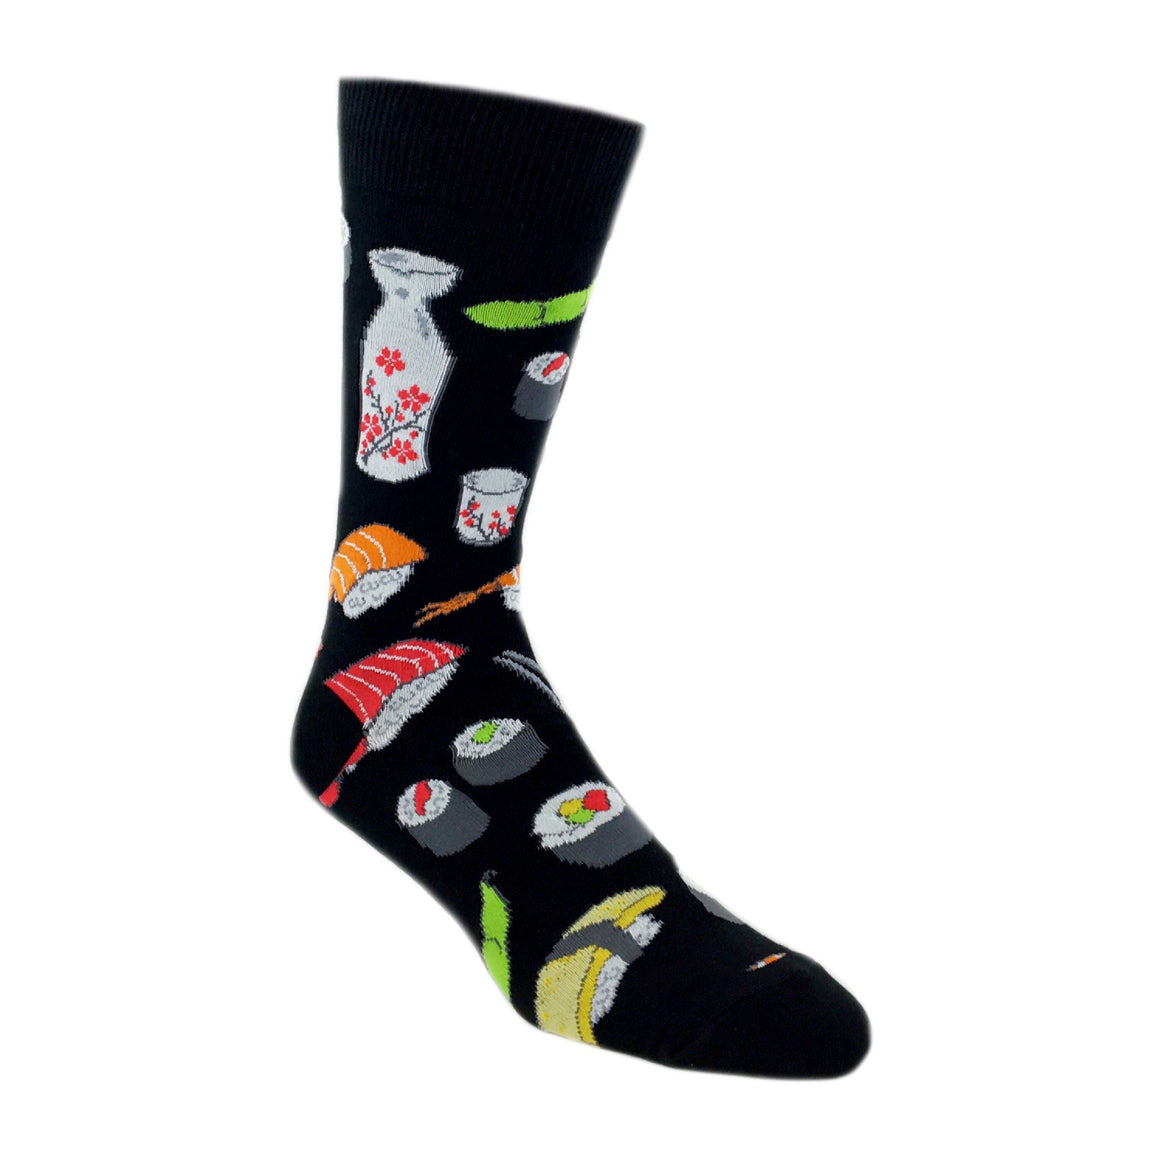 Yummy Sushi Socks In Black by SockSmith - The Sock Spot